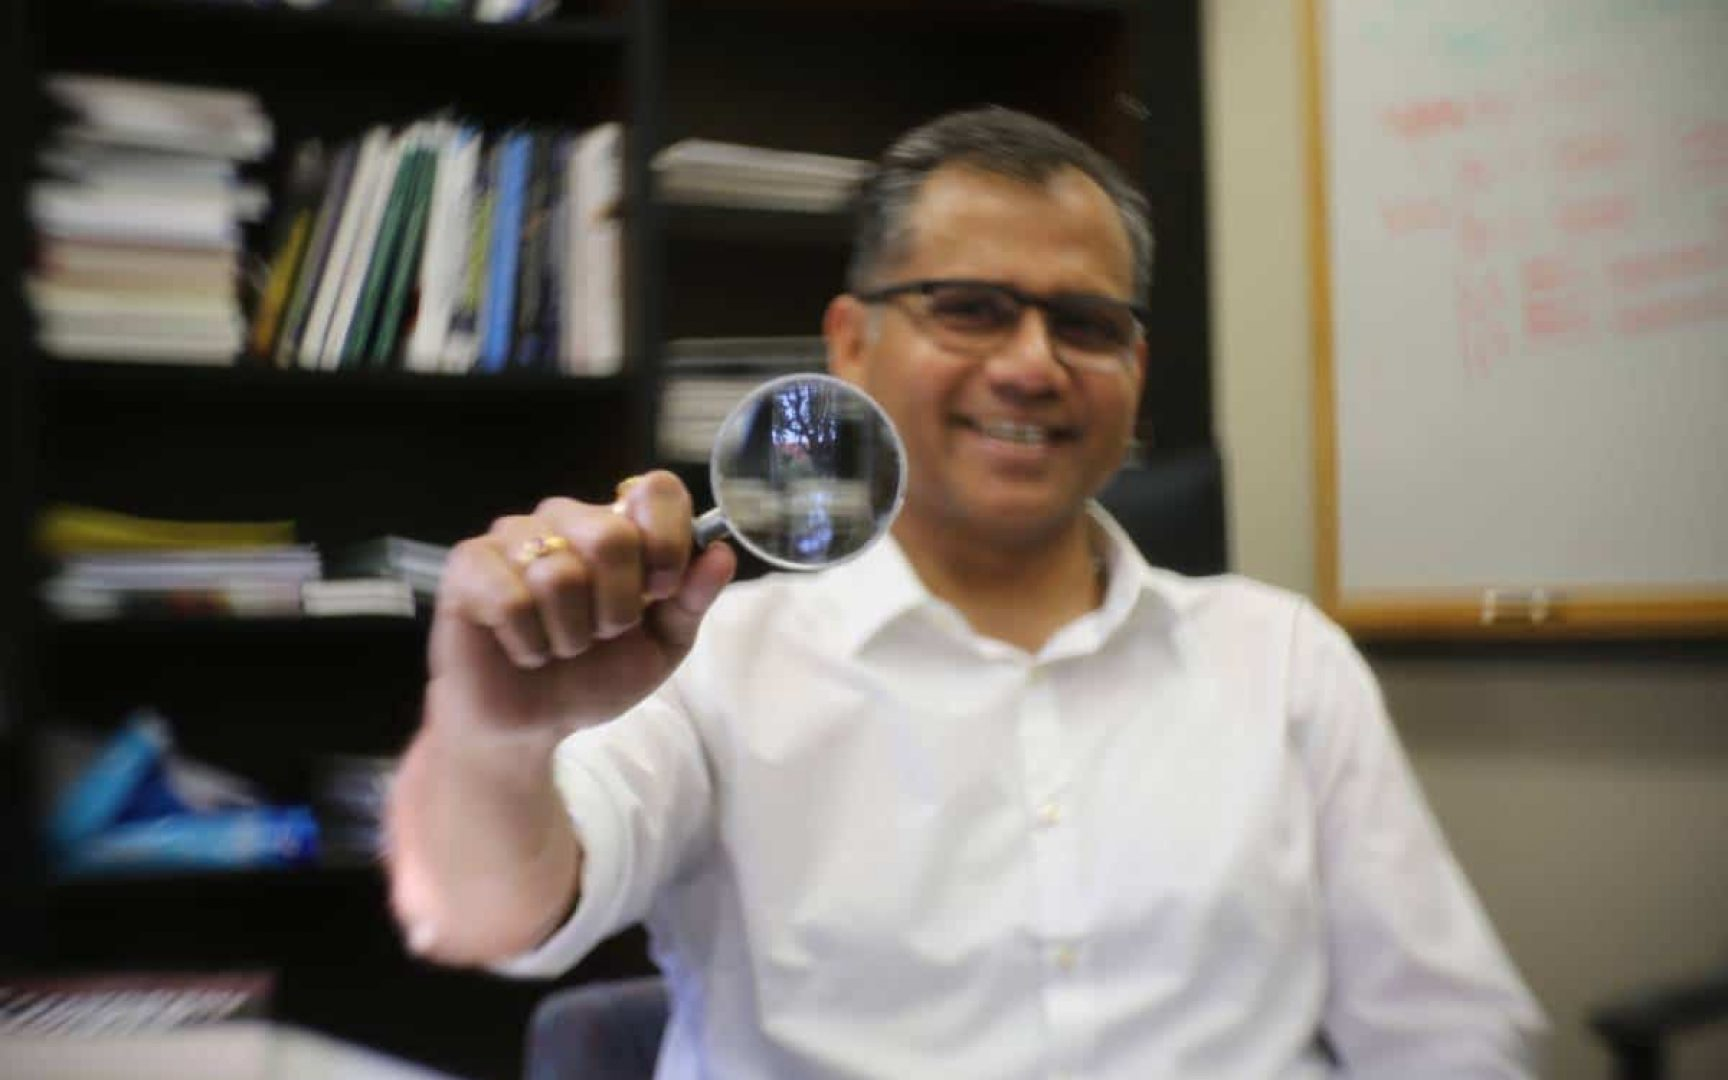 Warrington faculty member Anuj Kumar sitting in his office by a bookshelf holding up a magnifying class that reflects the courtyard outside of his office.